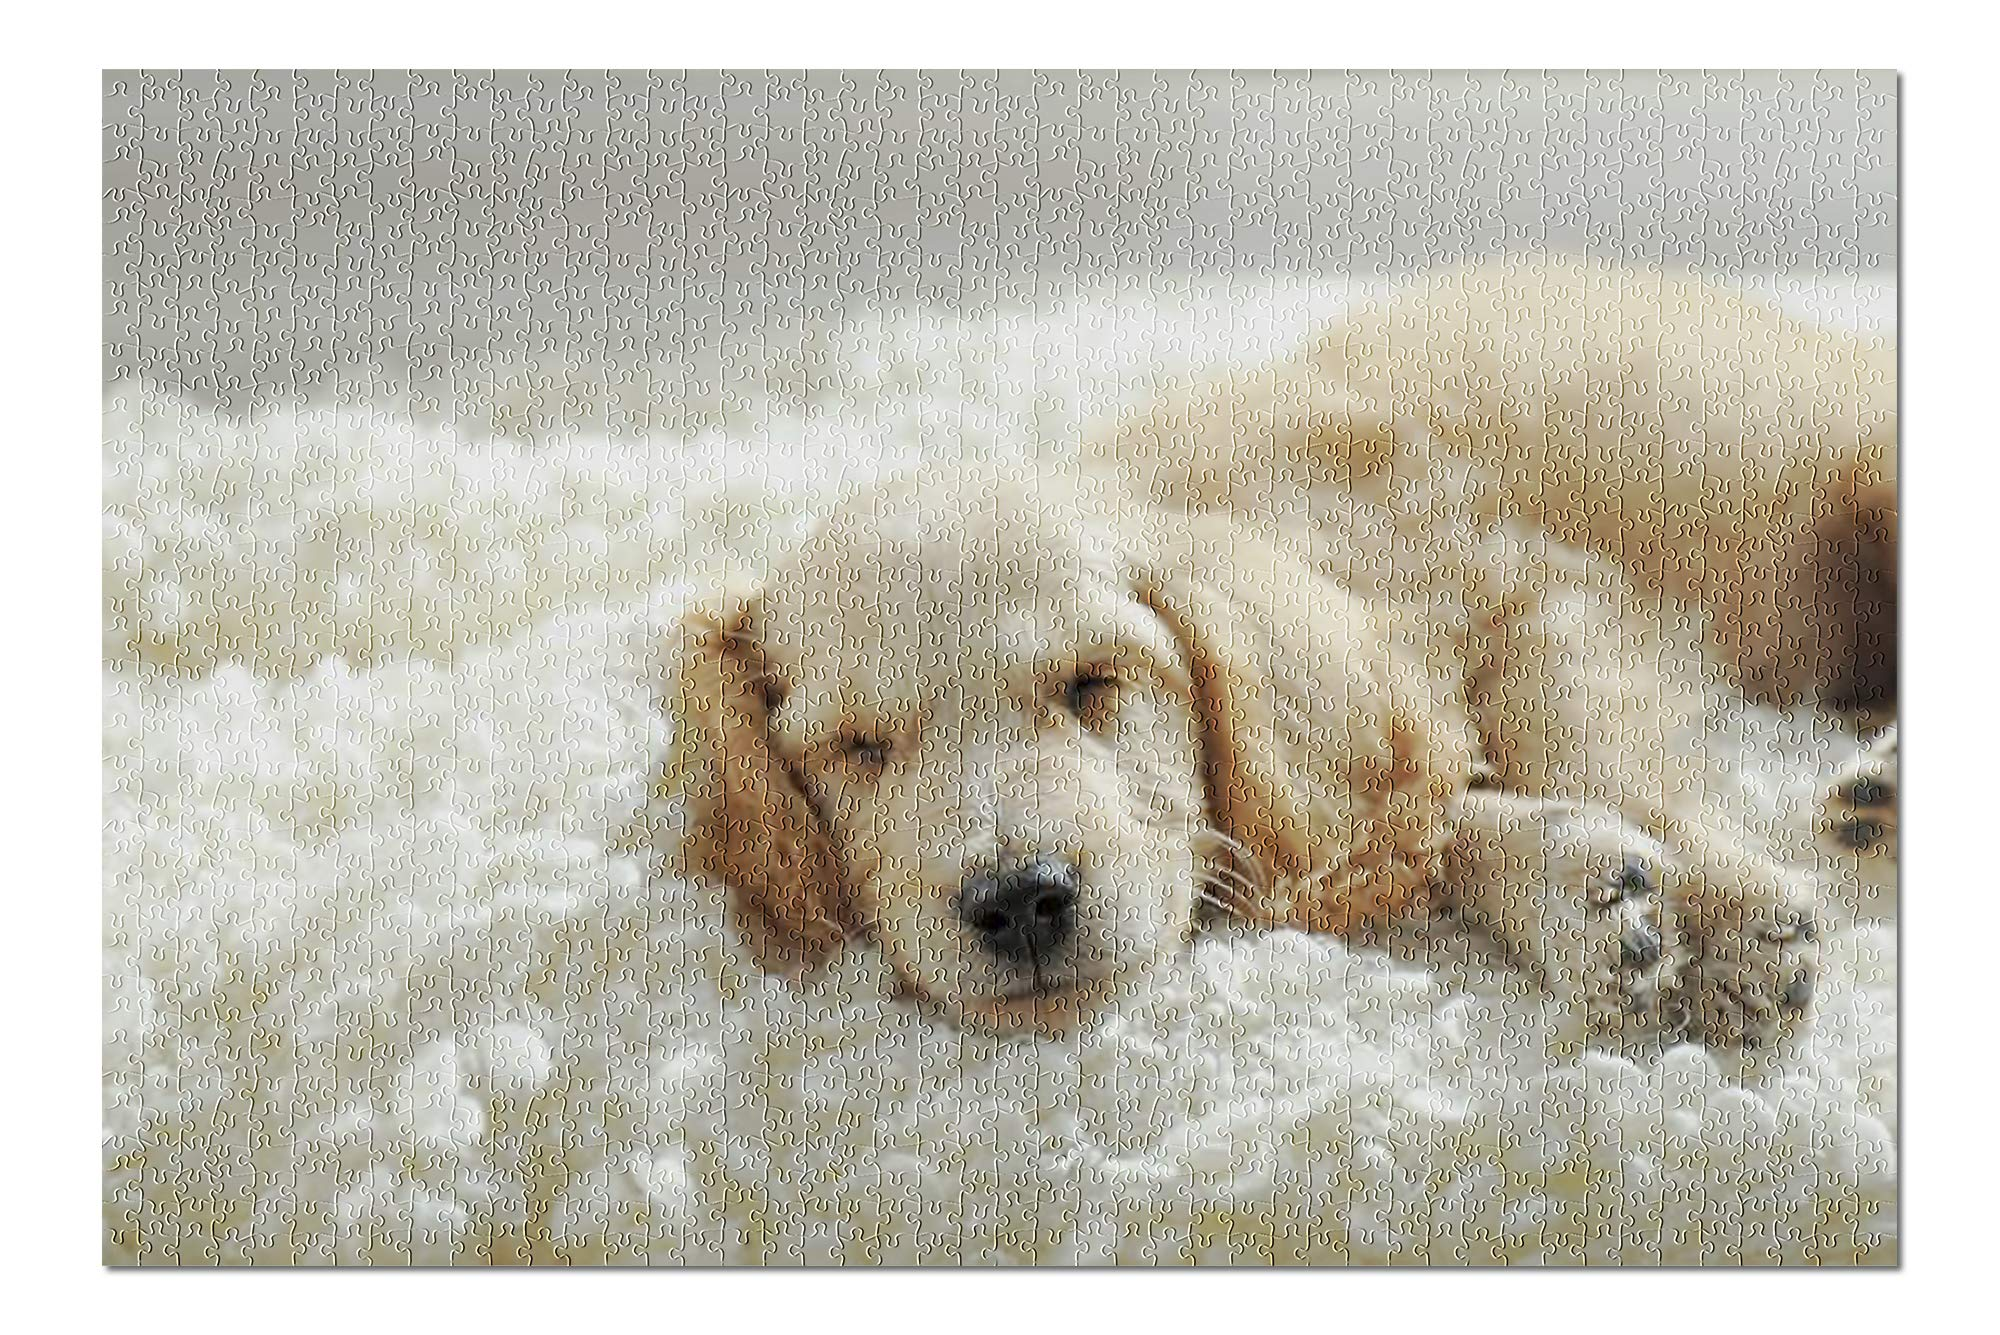 Cute English Cocker Spaniel Puppy Sleeping on a Fluffy White Blanket 9019748 (Premium 1000 Piece Jigsaw Puzzle for Adults, 20x30, Made in USA!)